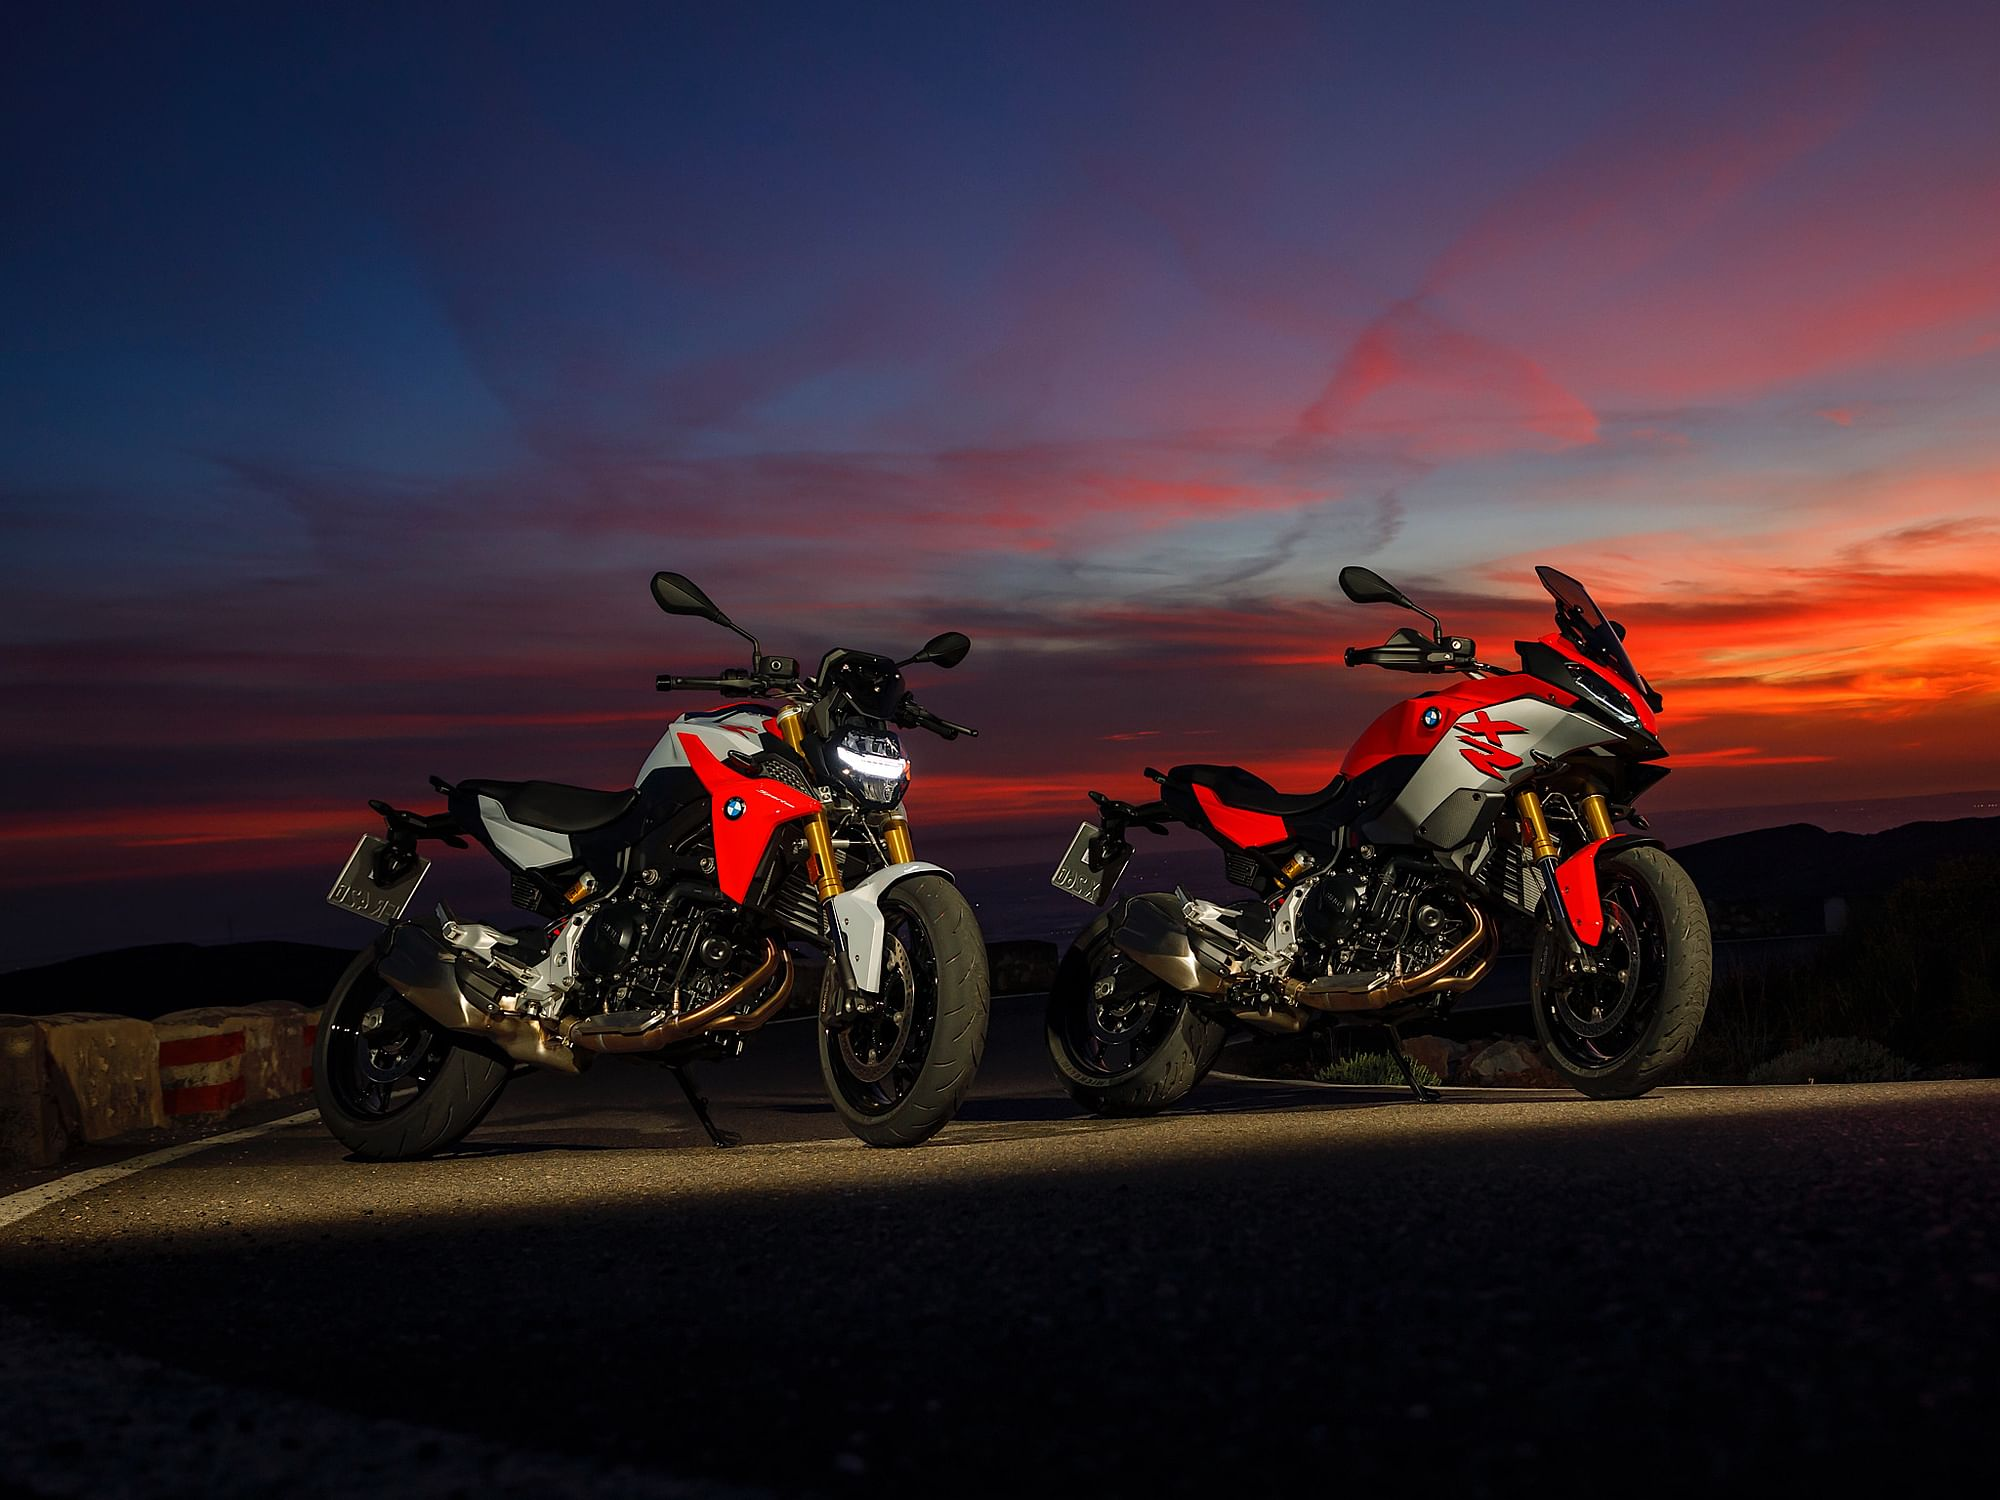 BMW F 900 R and F 900 XR launched in India - Autodevot